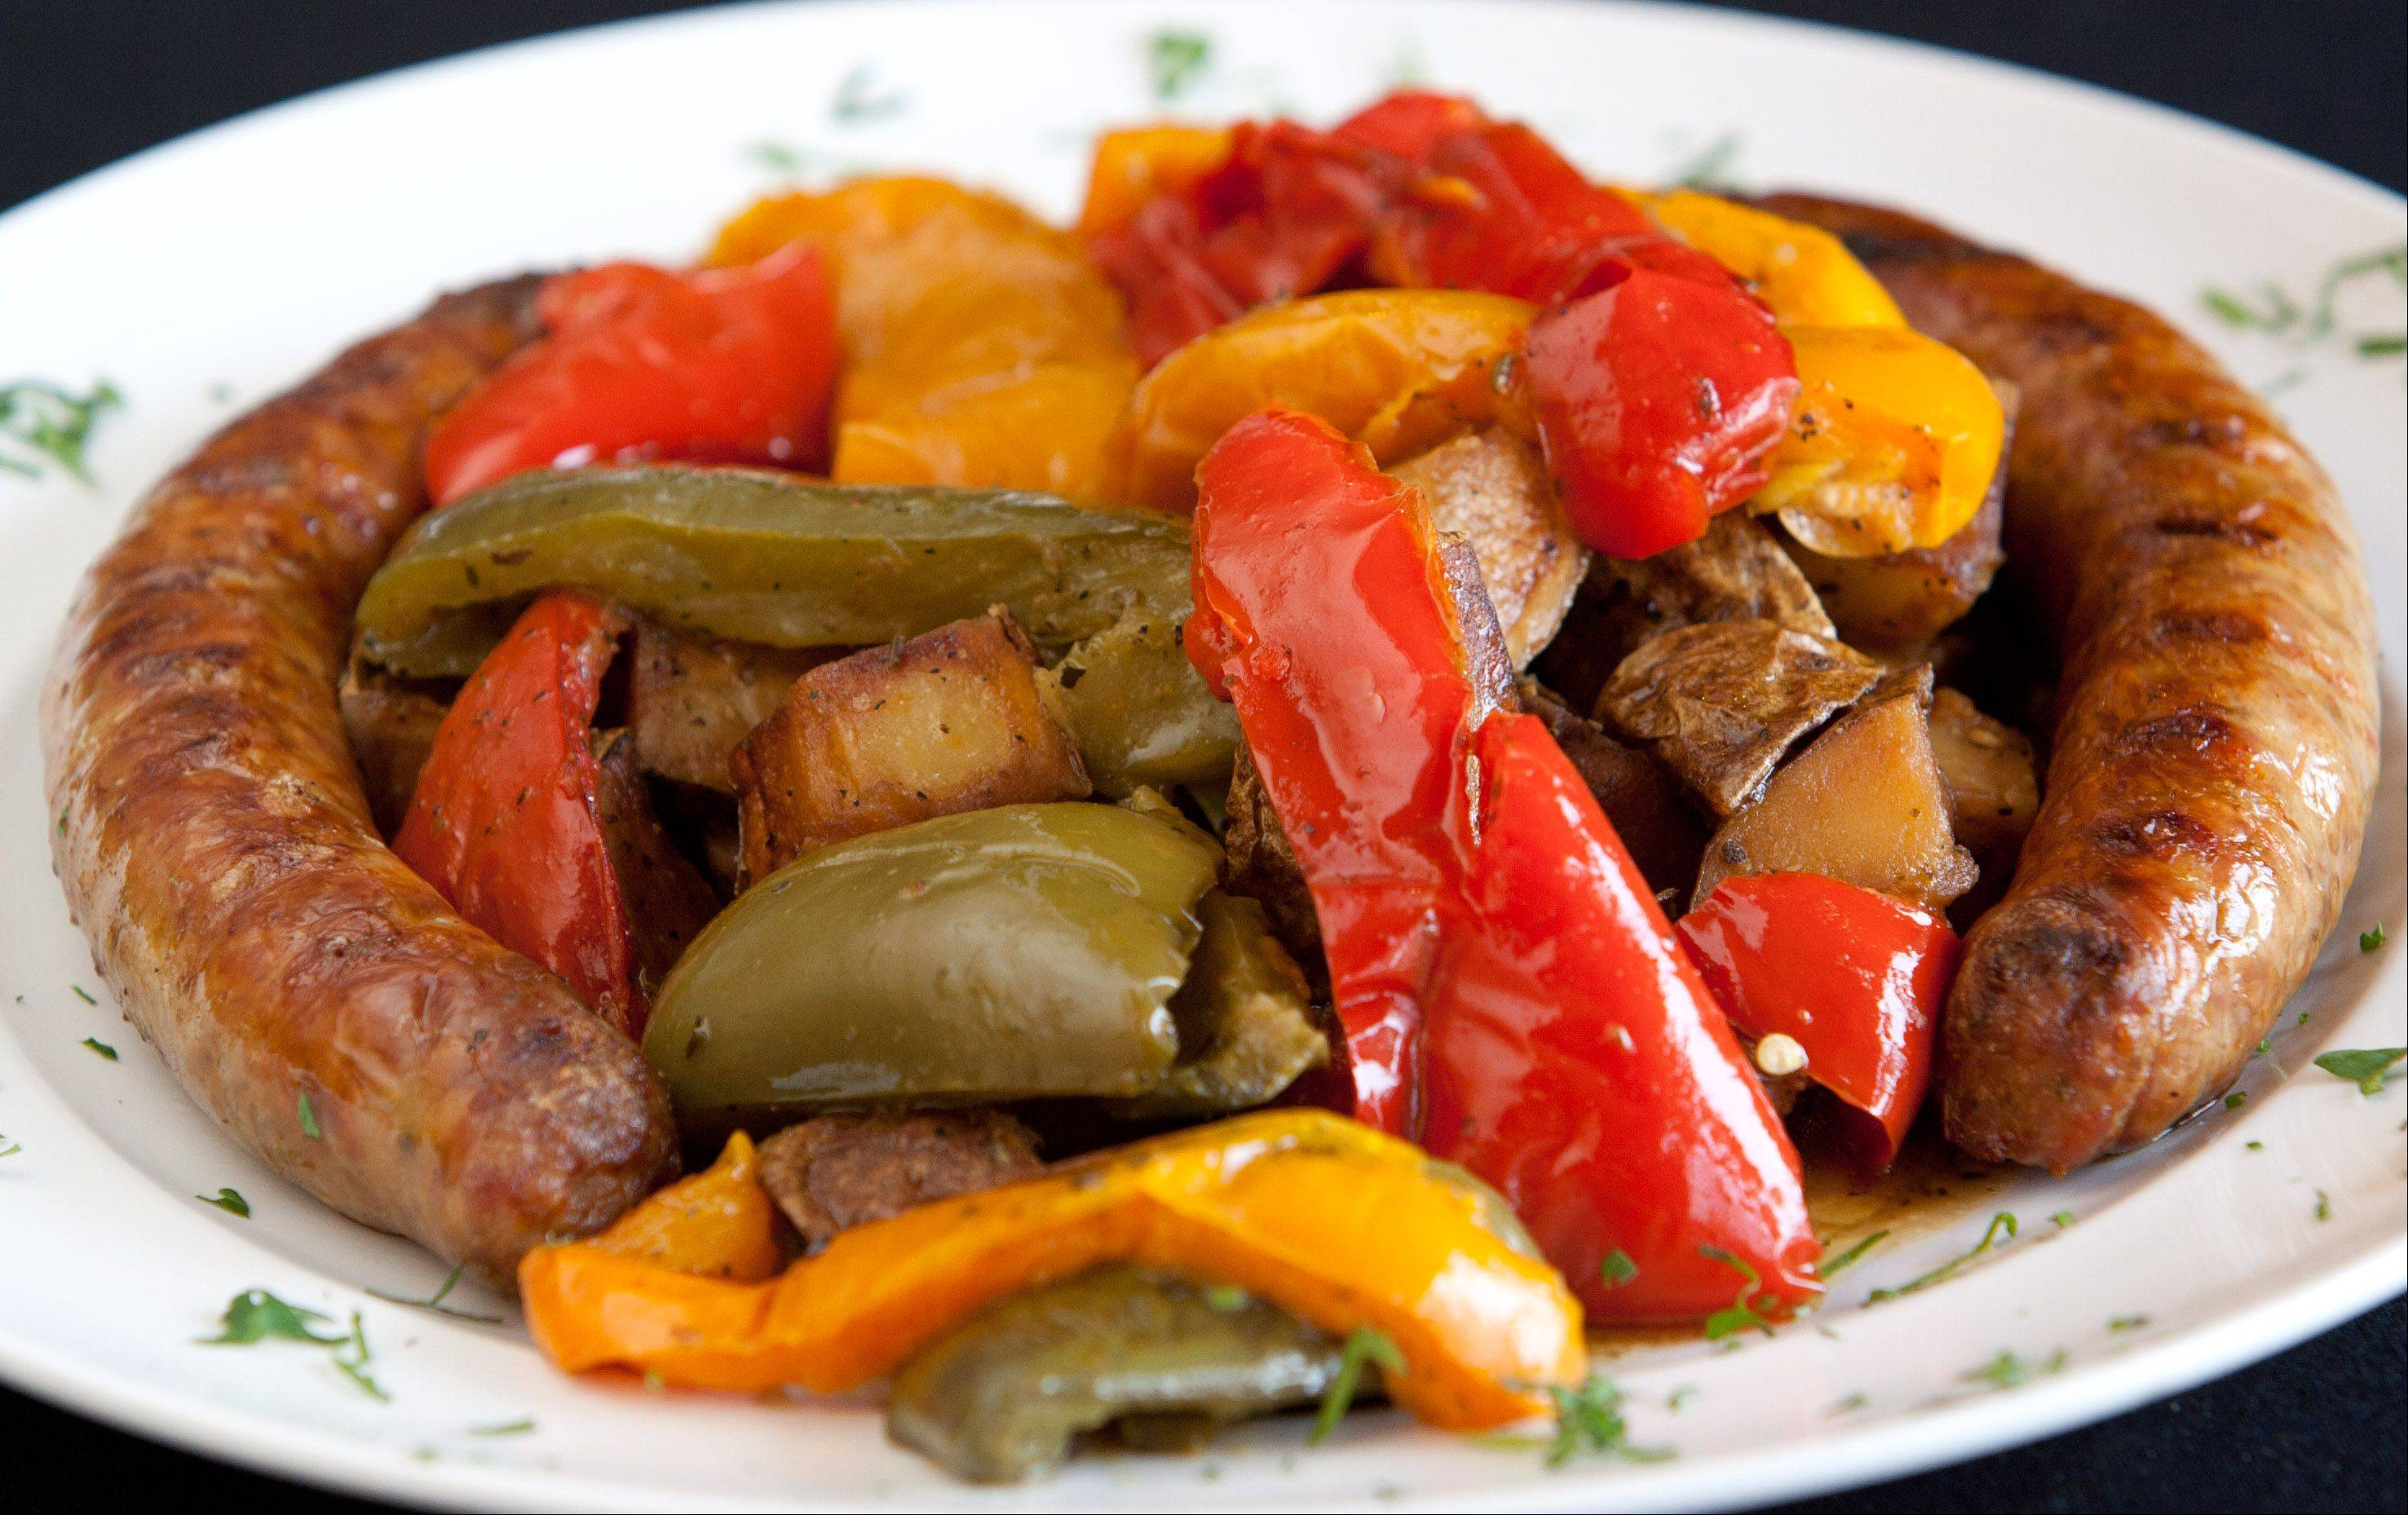 Italian sausage with roasted sweet peppers and potatoes at Navarro's of Naperville.